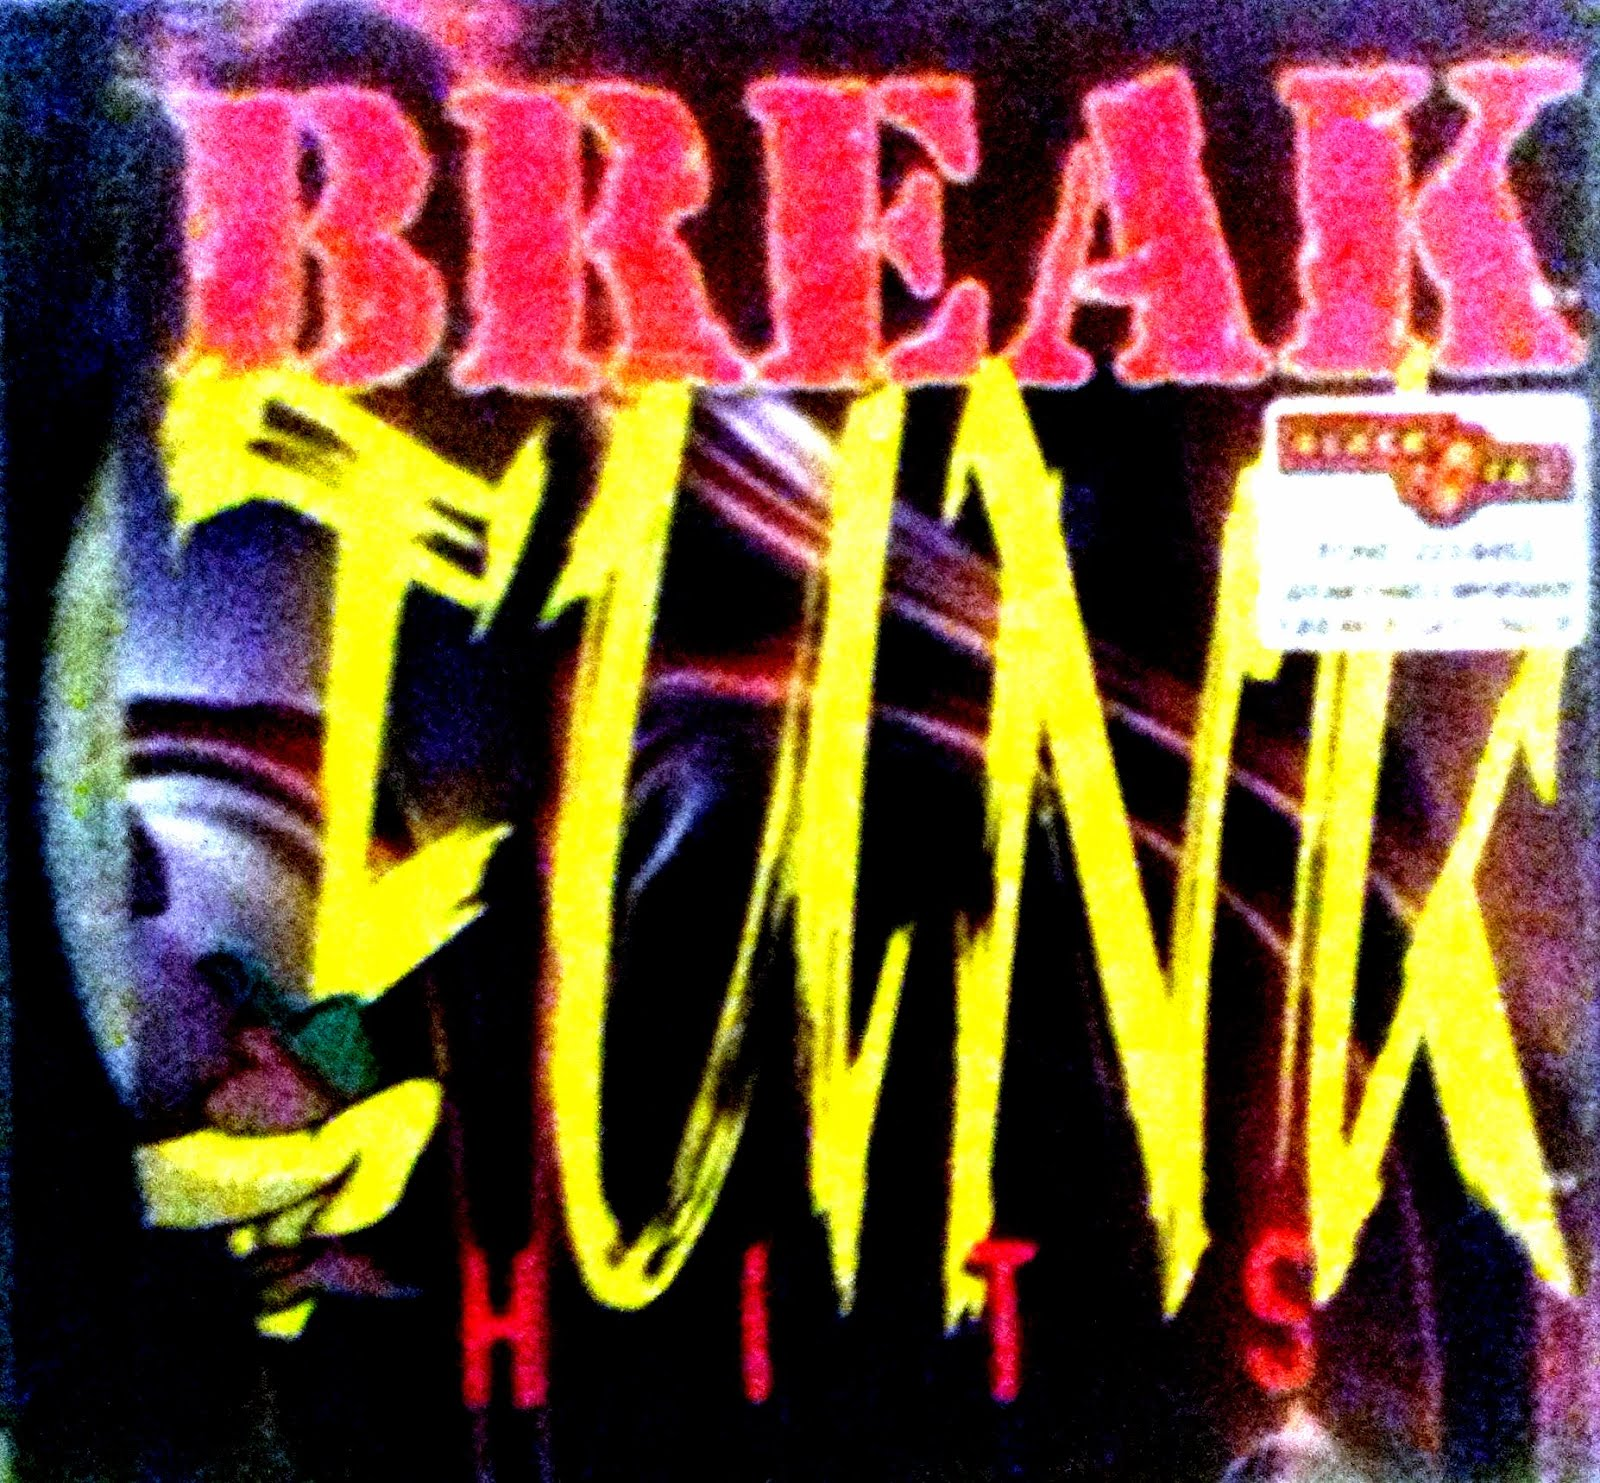 BREAK FUNK HITS